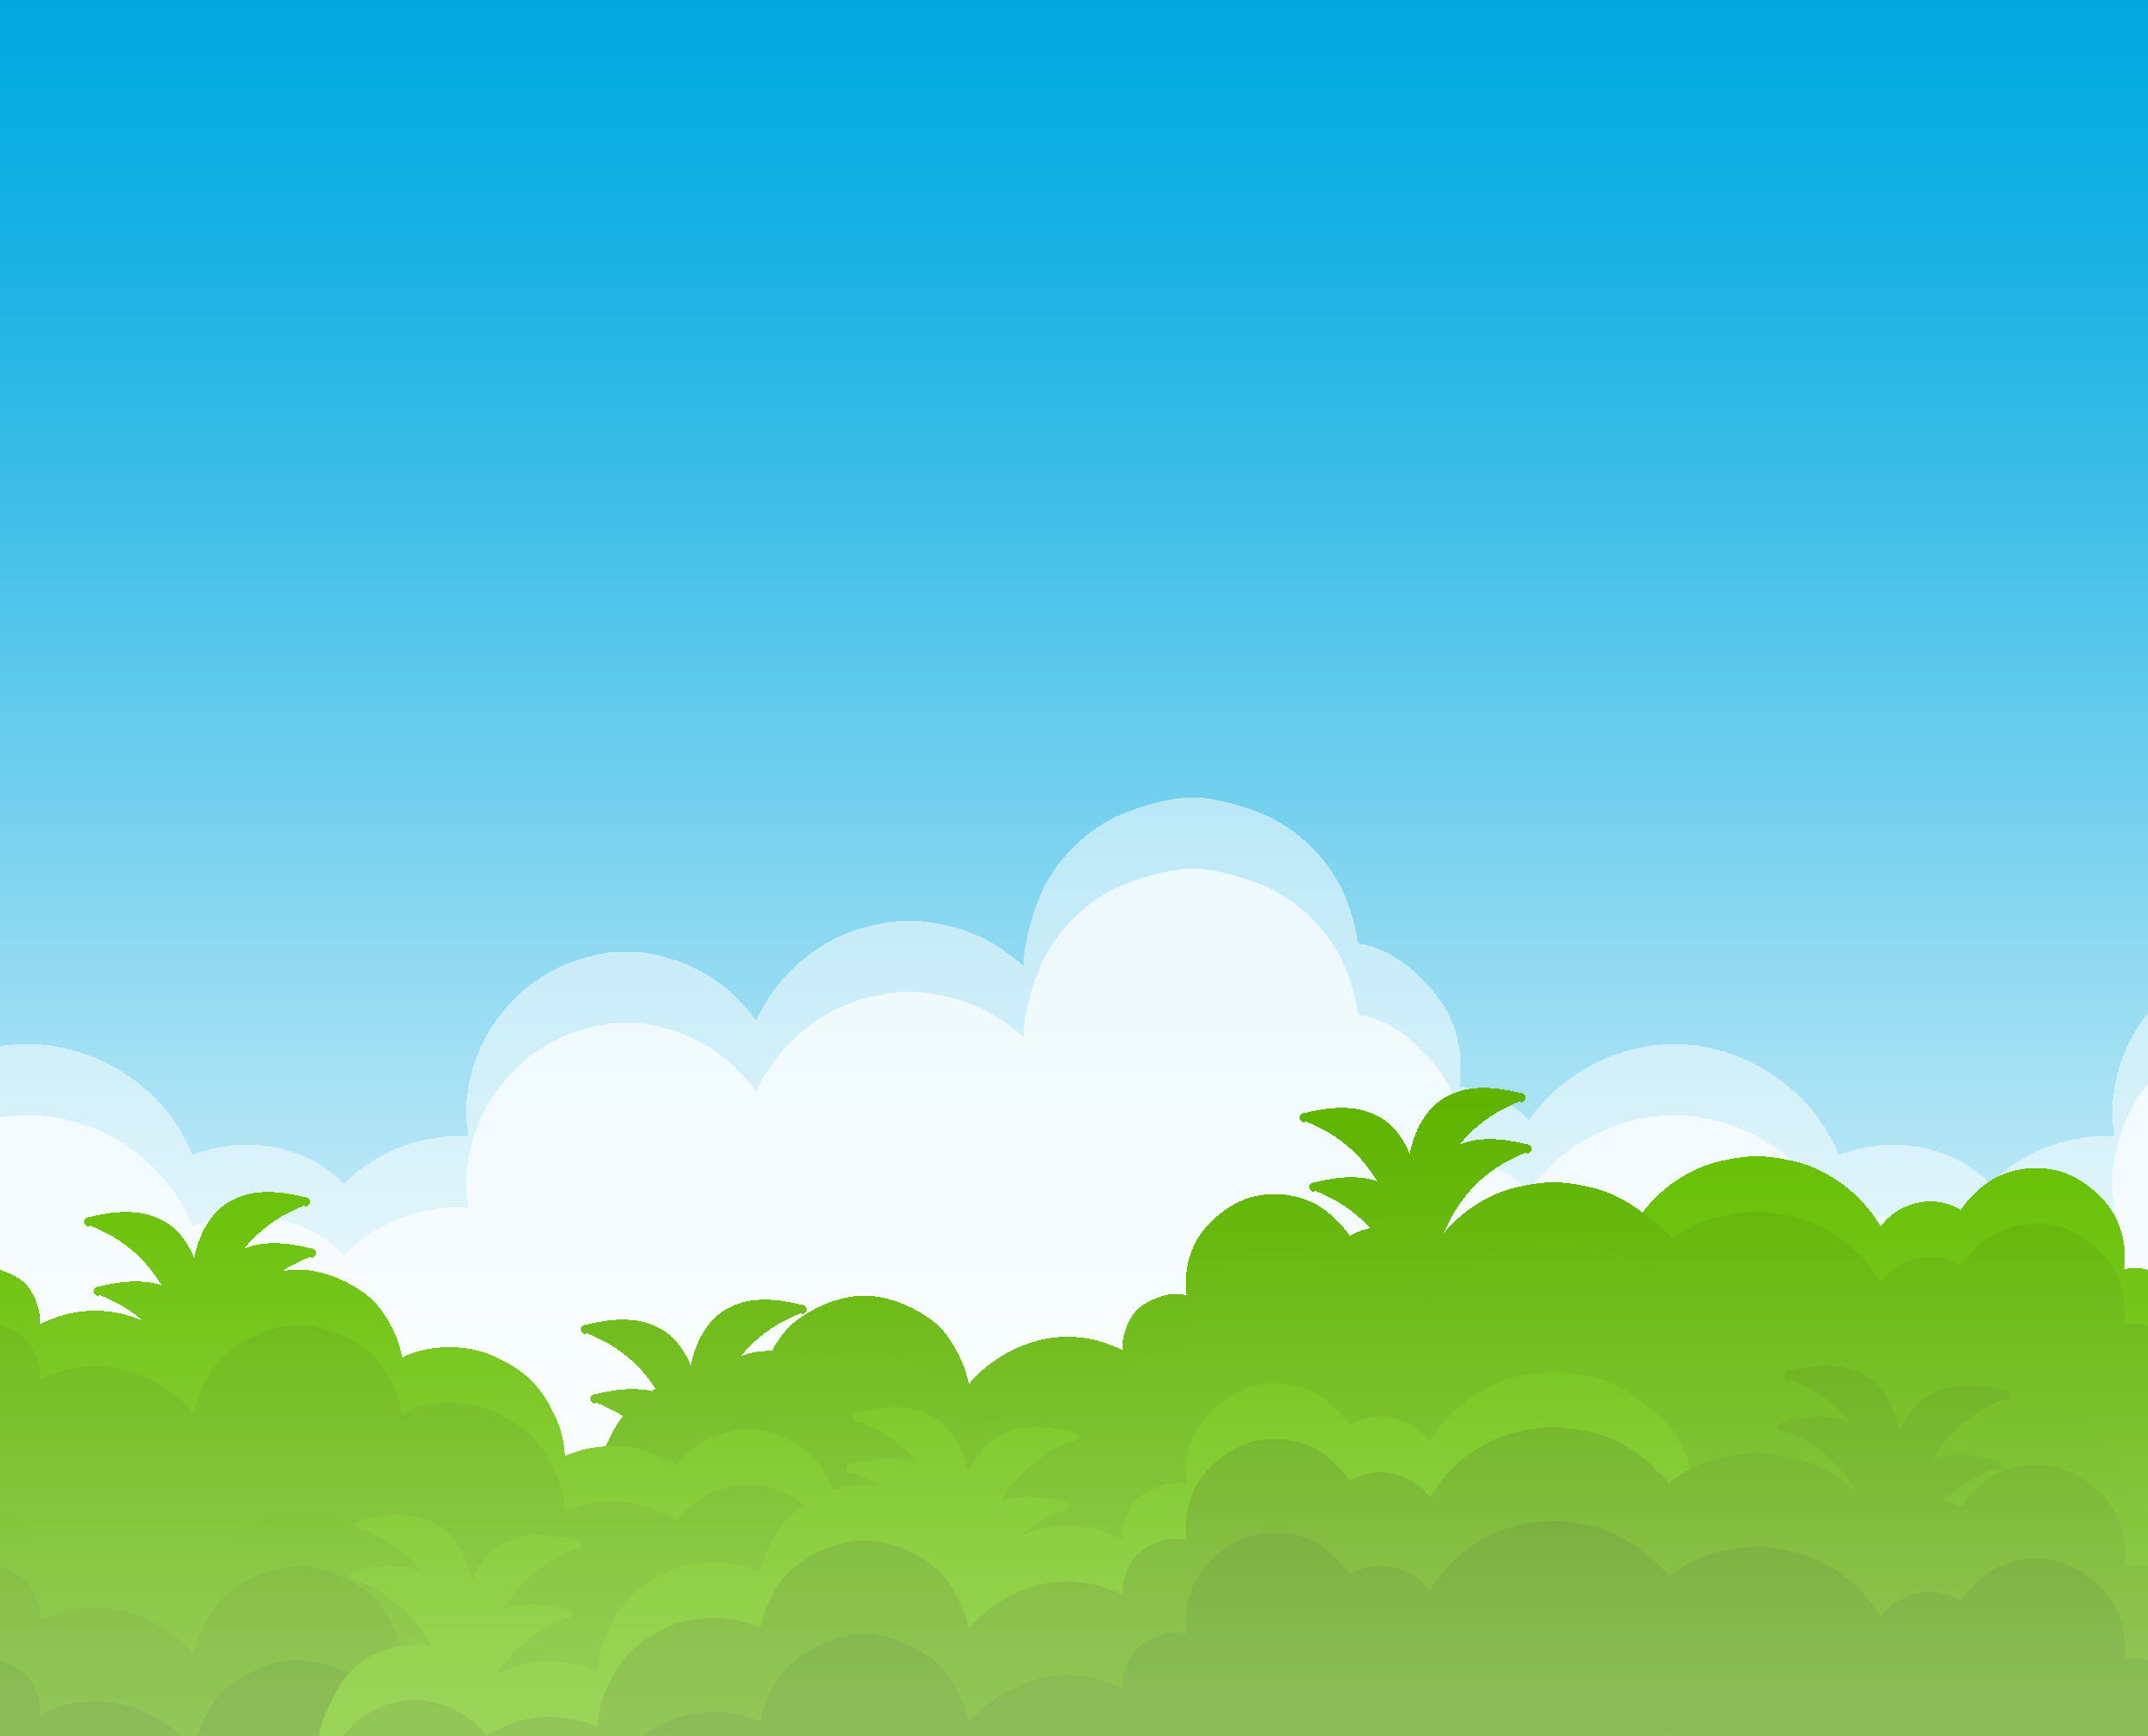 Game background clipart images gallery for free download.